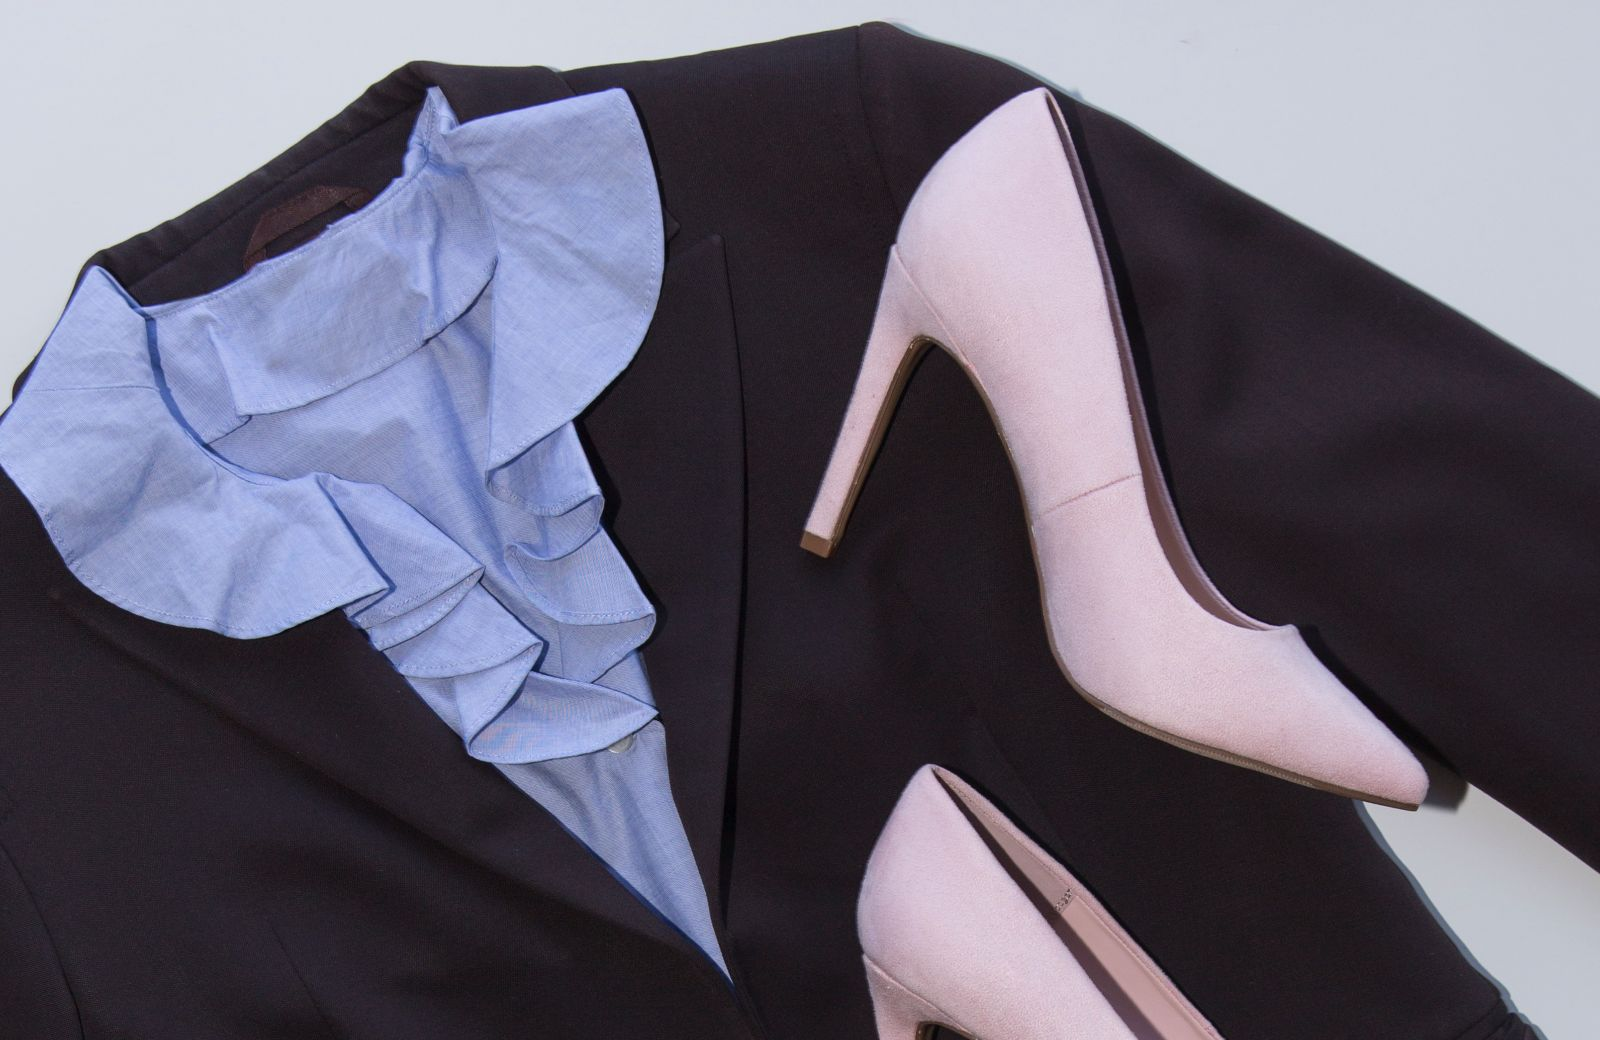 demystifying-office-dress-code-policy-formal-women